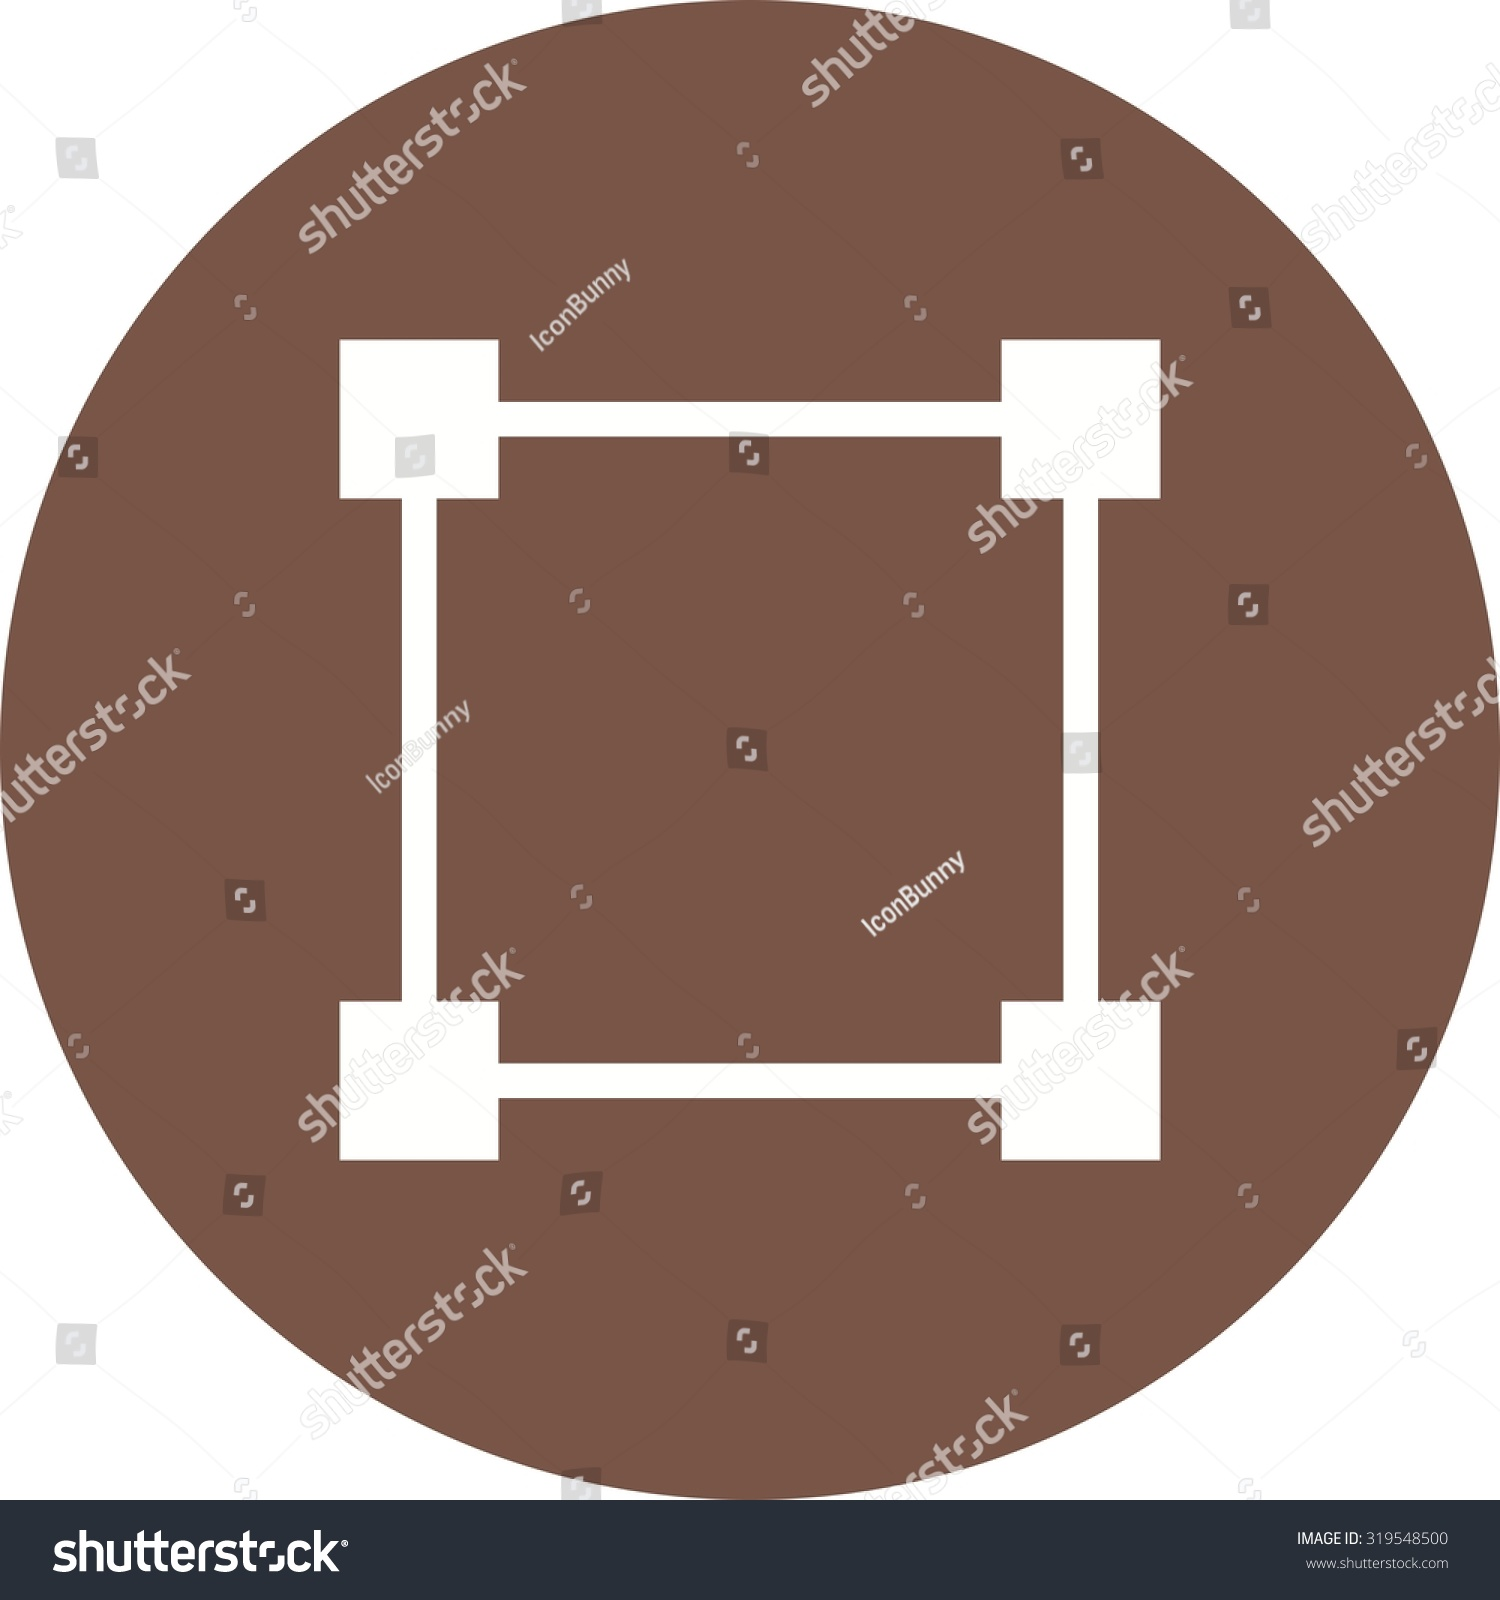 Node network diagram icon vector image stock vector 319548500 node network diagram icon vector image can also be used for shapes and ccuart Choice Image